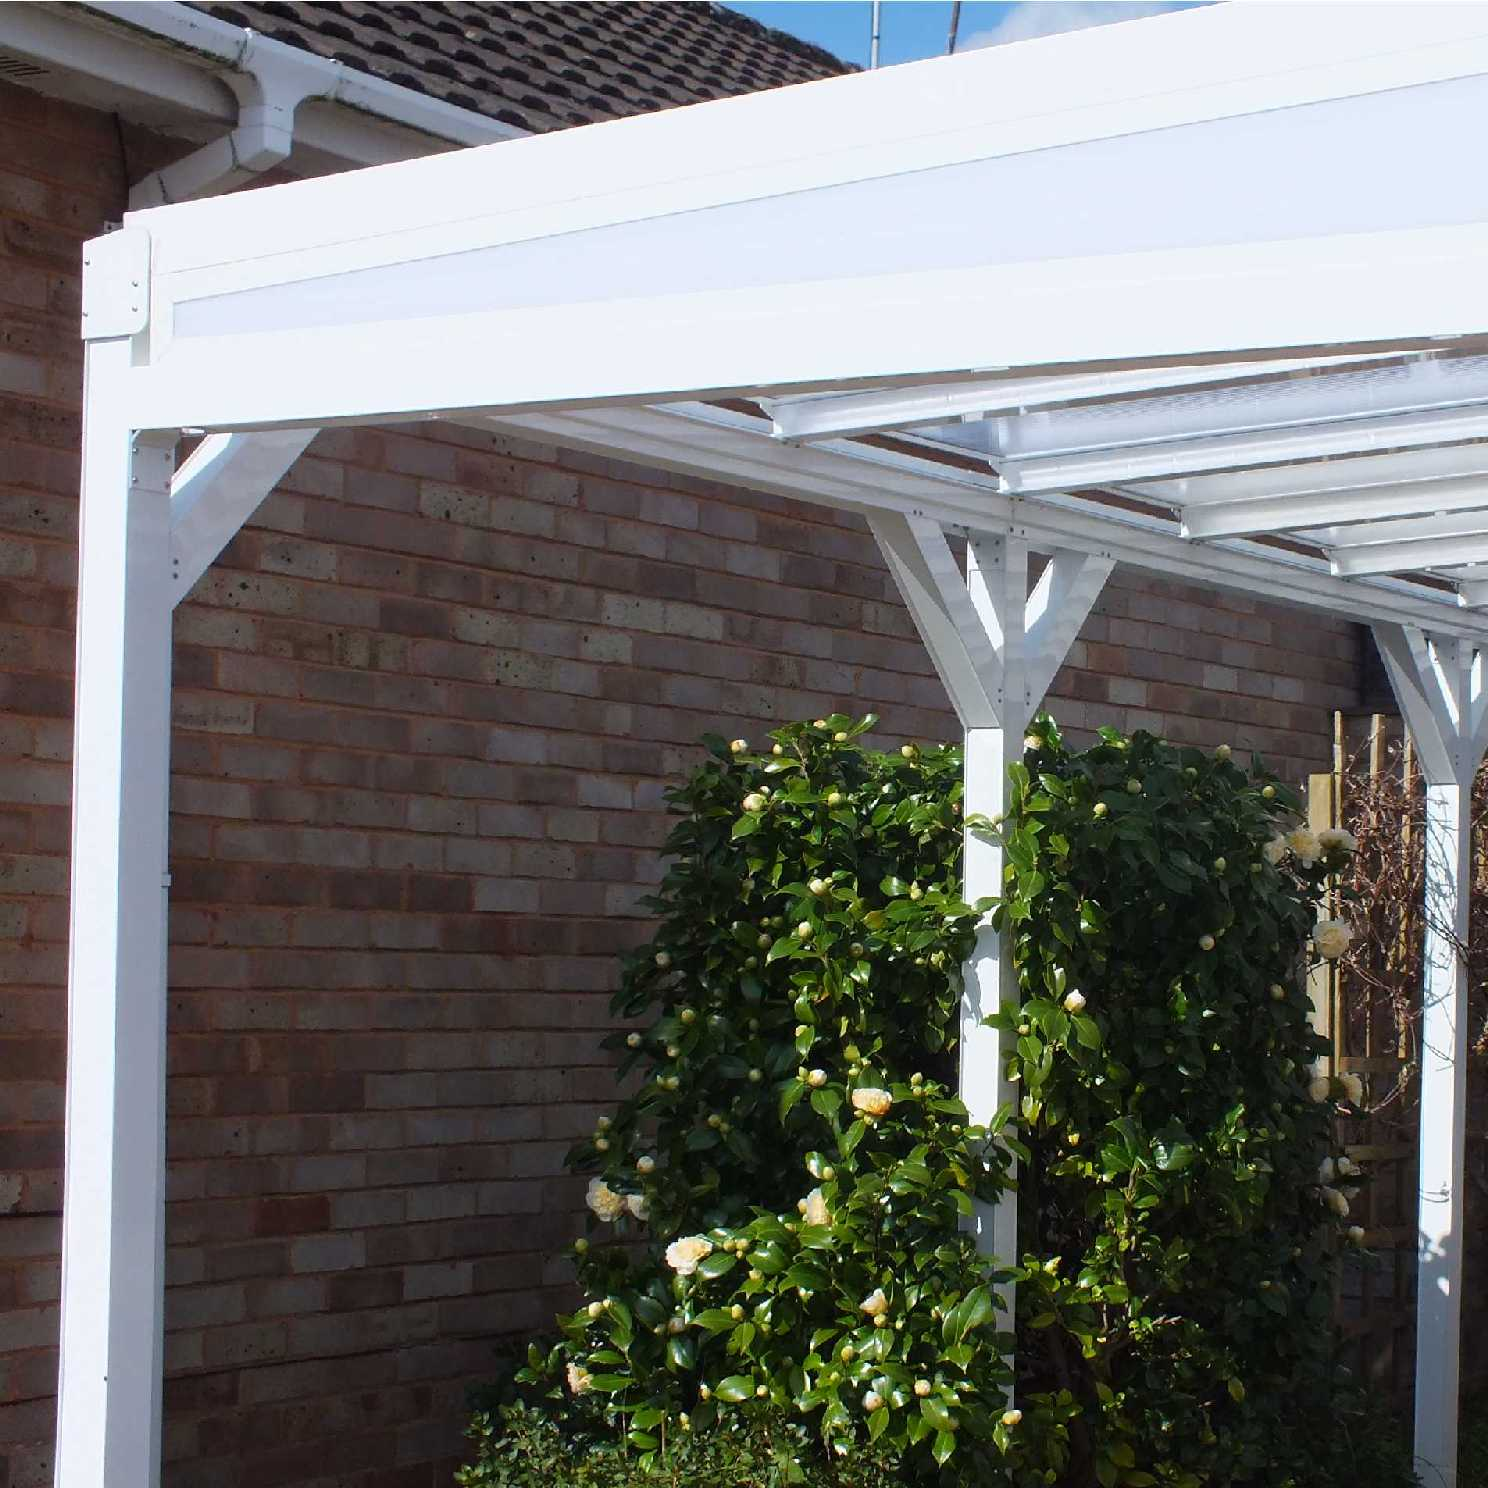 Omega Smart Lean-To Canopy with 16mm Polycarbonate Glazing - 7.4m (W) x 4.5m (P), (4) Supporting Posts from Omega Build